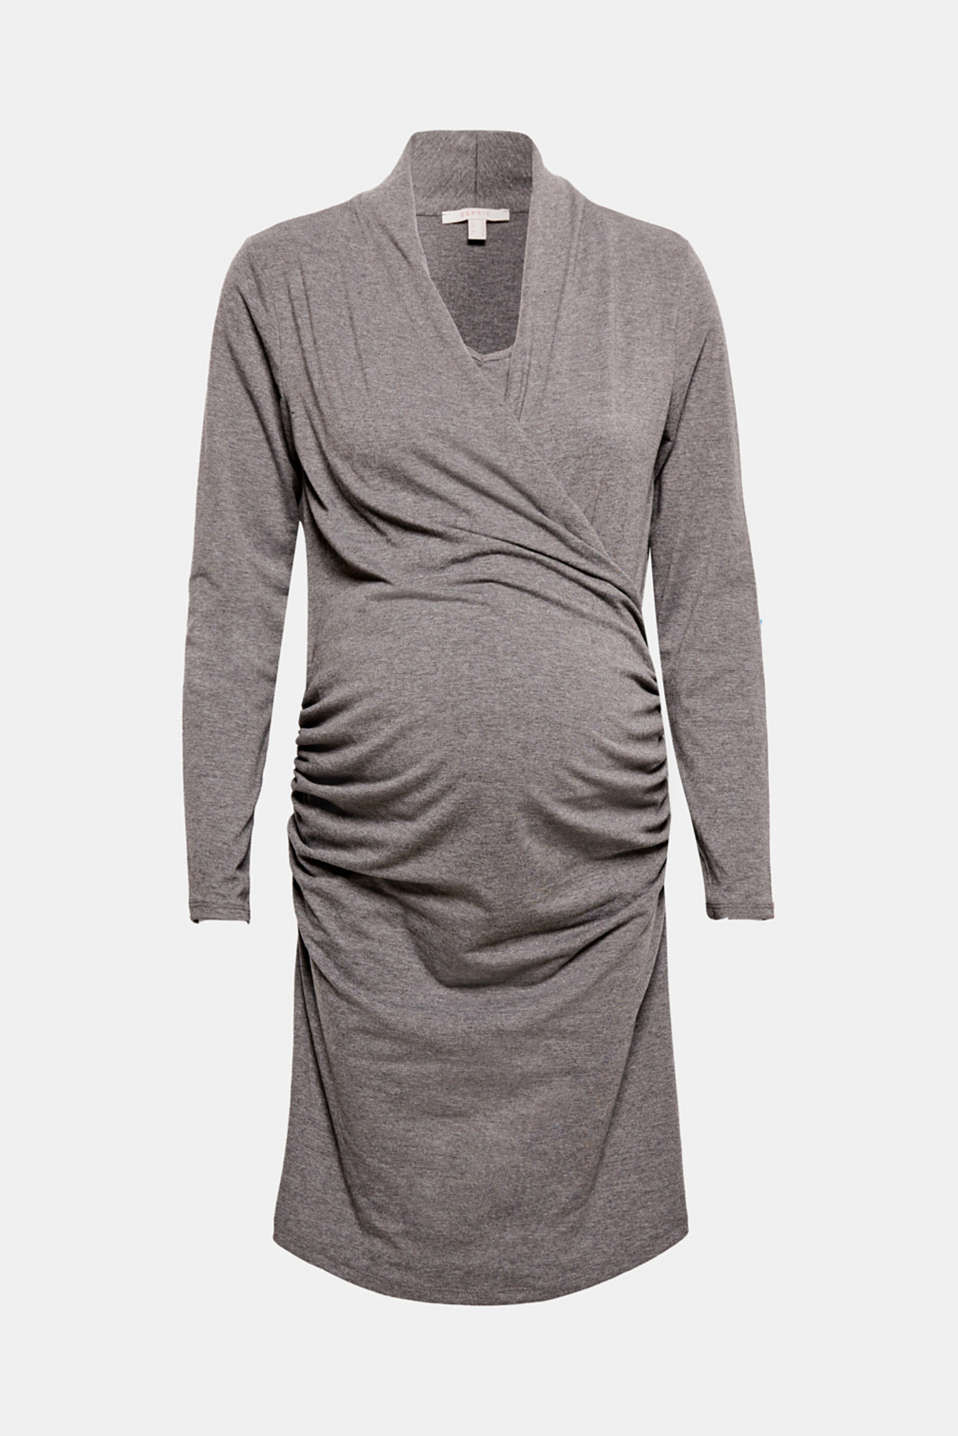 This comfy, stretch jersey dress featuring a shawl collar, striking gathering and easy nursing options is feminine and functional!